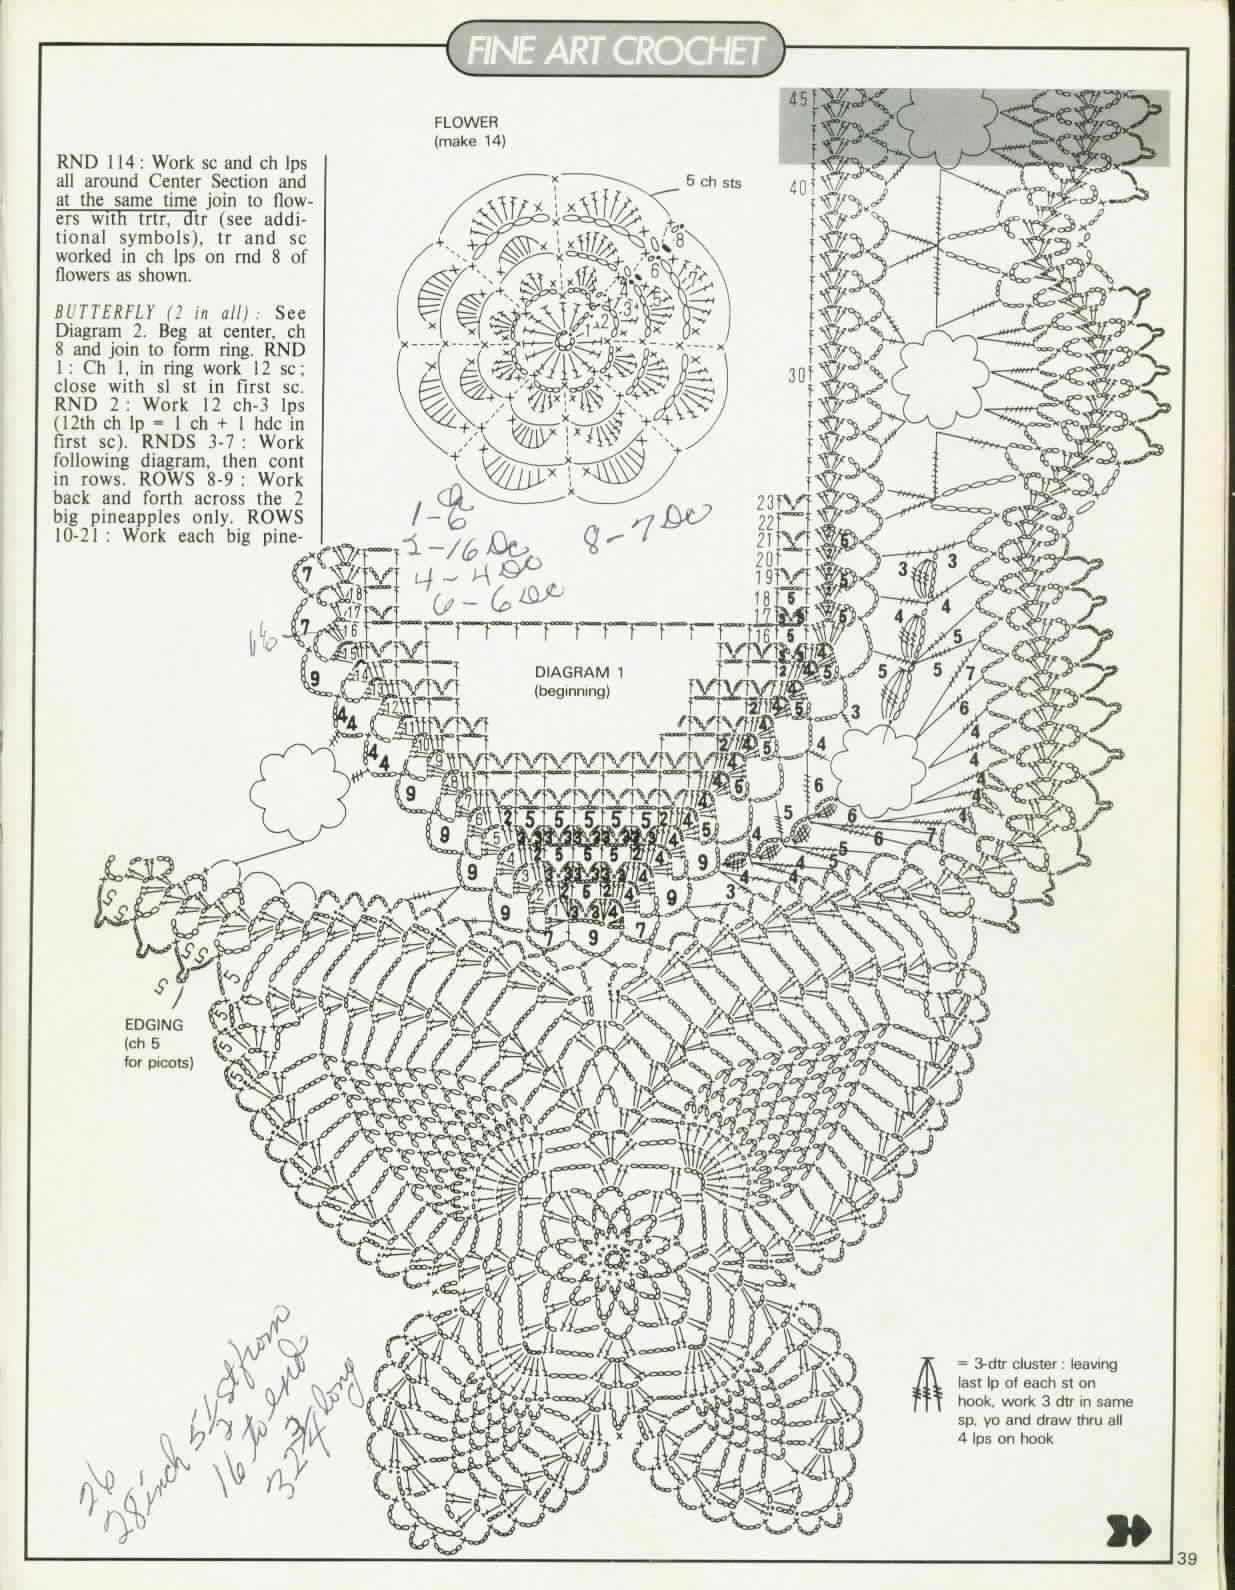 Pin By Mnica Garca Baena On Patrones Pinterest Crochet Doily Diagram 2 Patterns N2